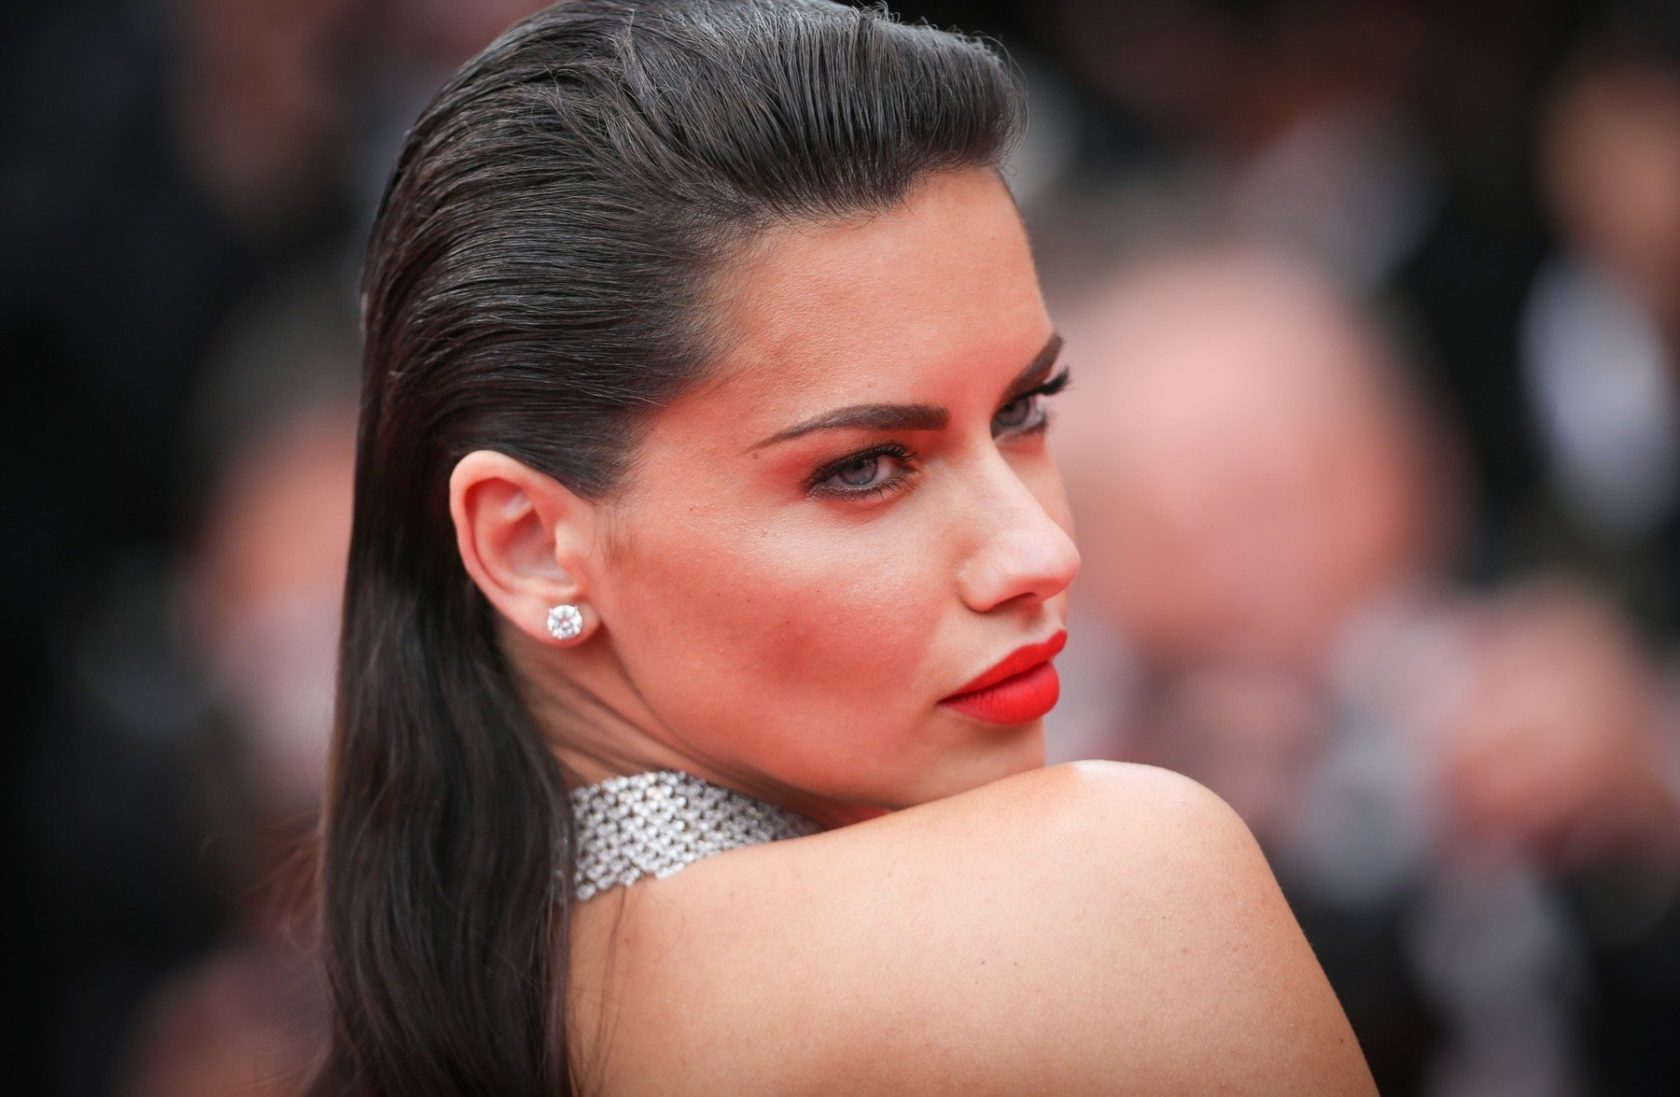 Adriana Lima attends the 'Loveless (Nelyubov)' screening during the 70th annual Cannes Film Festival at Palais des Festivals on May 18, 2017 in Cannes, France, Image: 332750754, License: Rights-managed, Restrictions: Worldwide rights, Model Release: no, Credit line: Profimedia, Crystal pictures